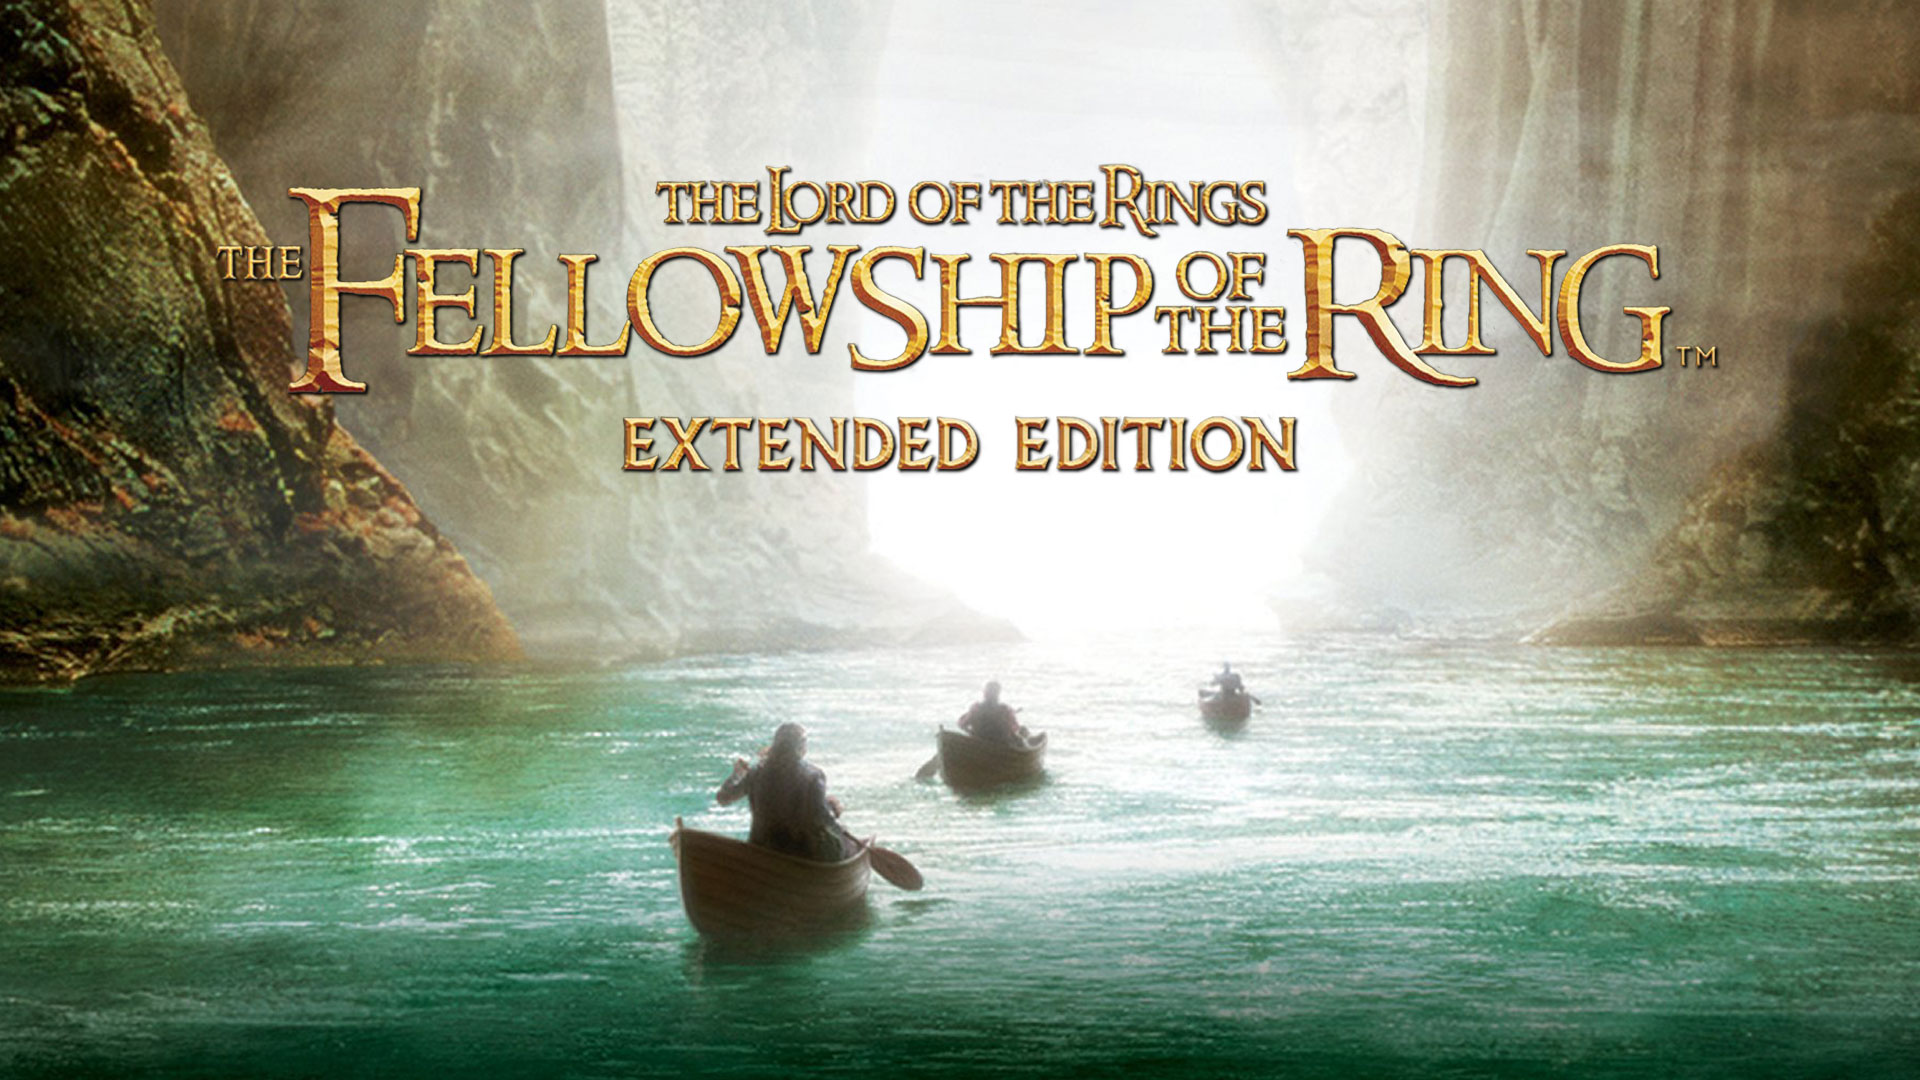 Lord of the Rings: The Fellowship of the Ring - Extended Edition